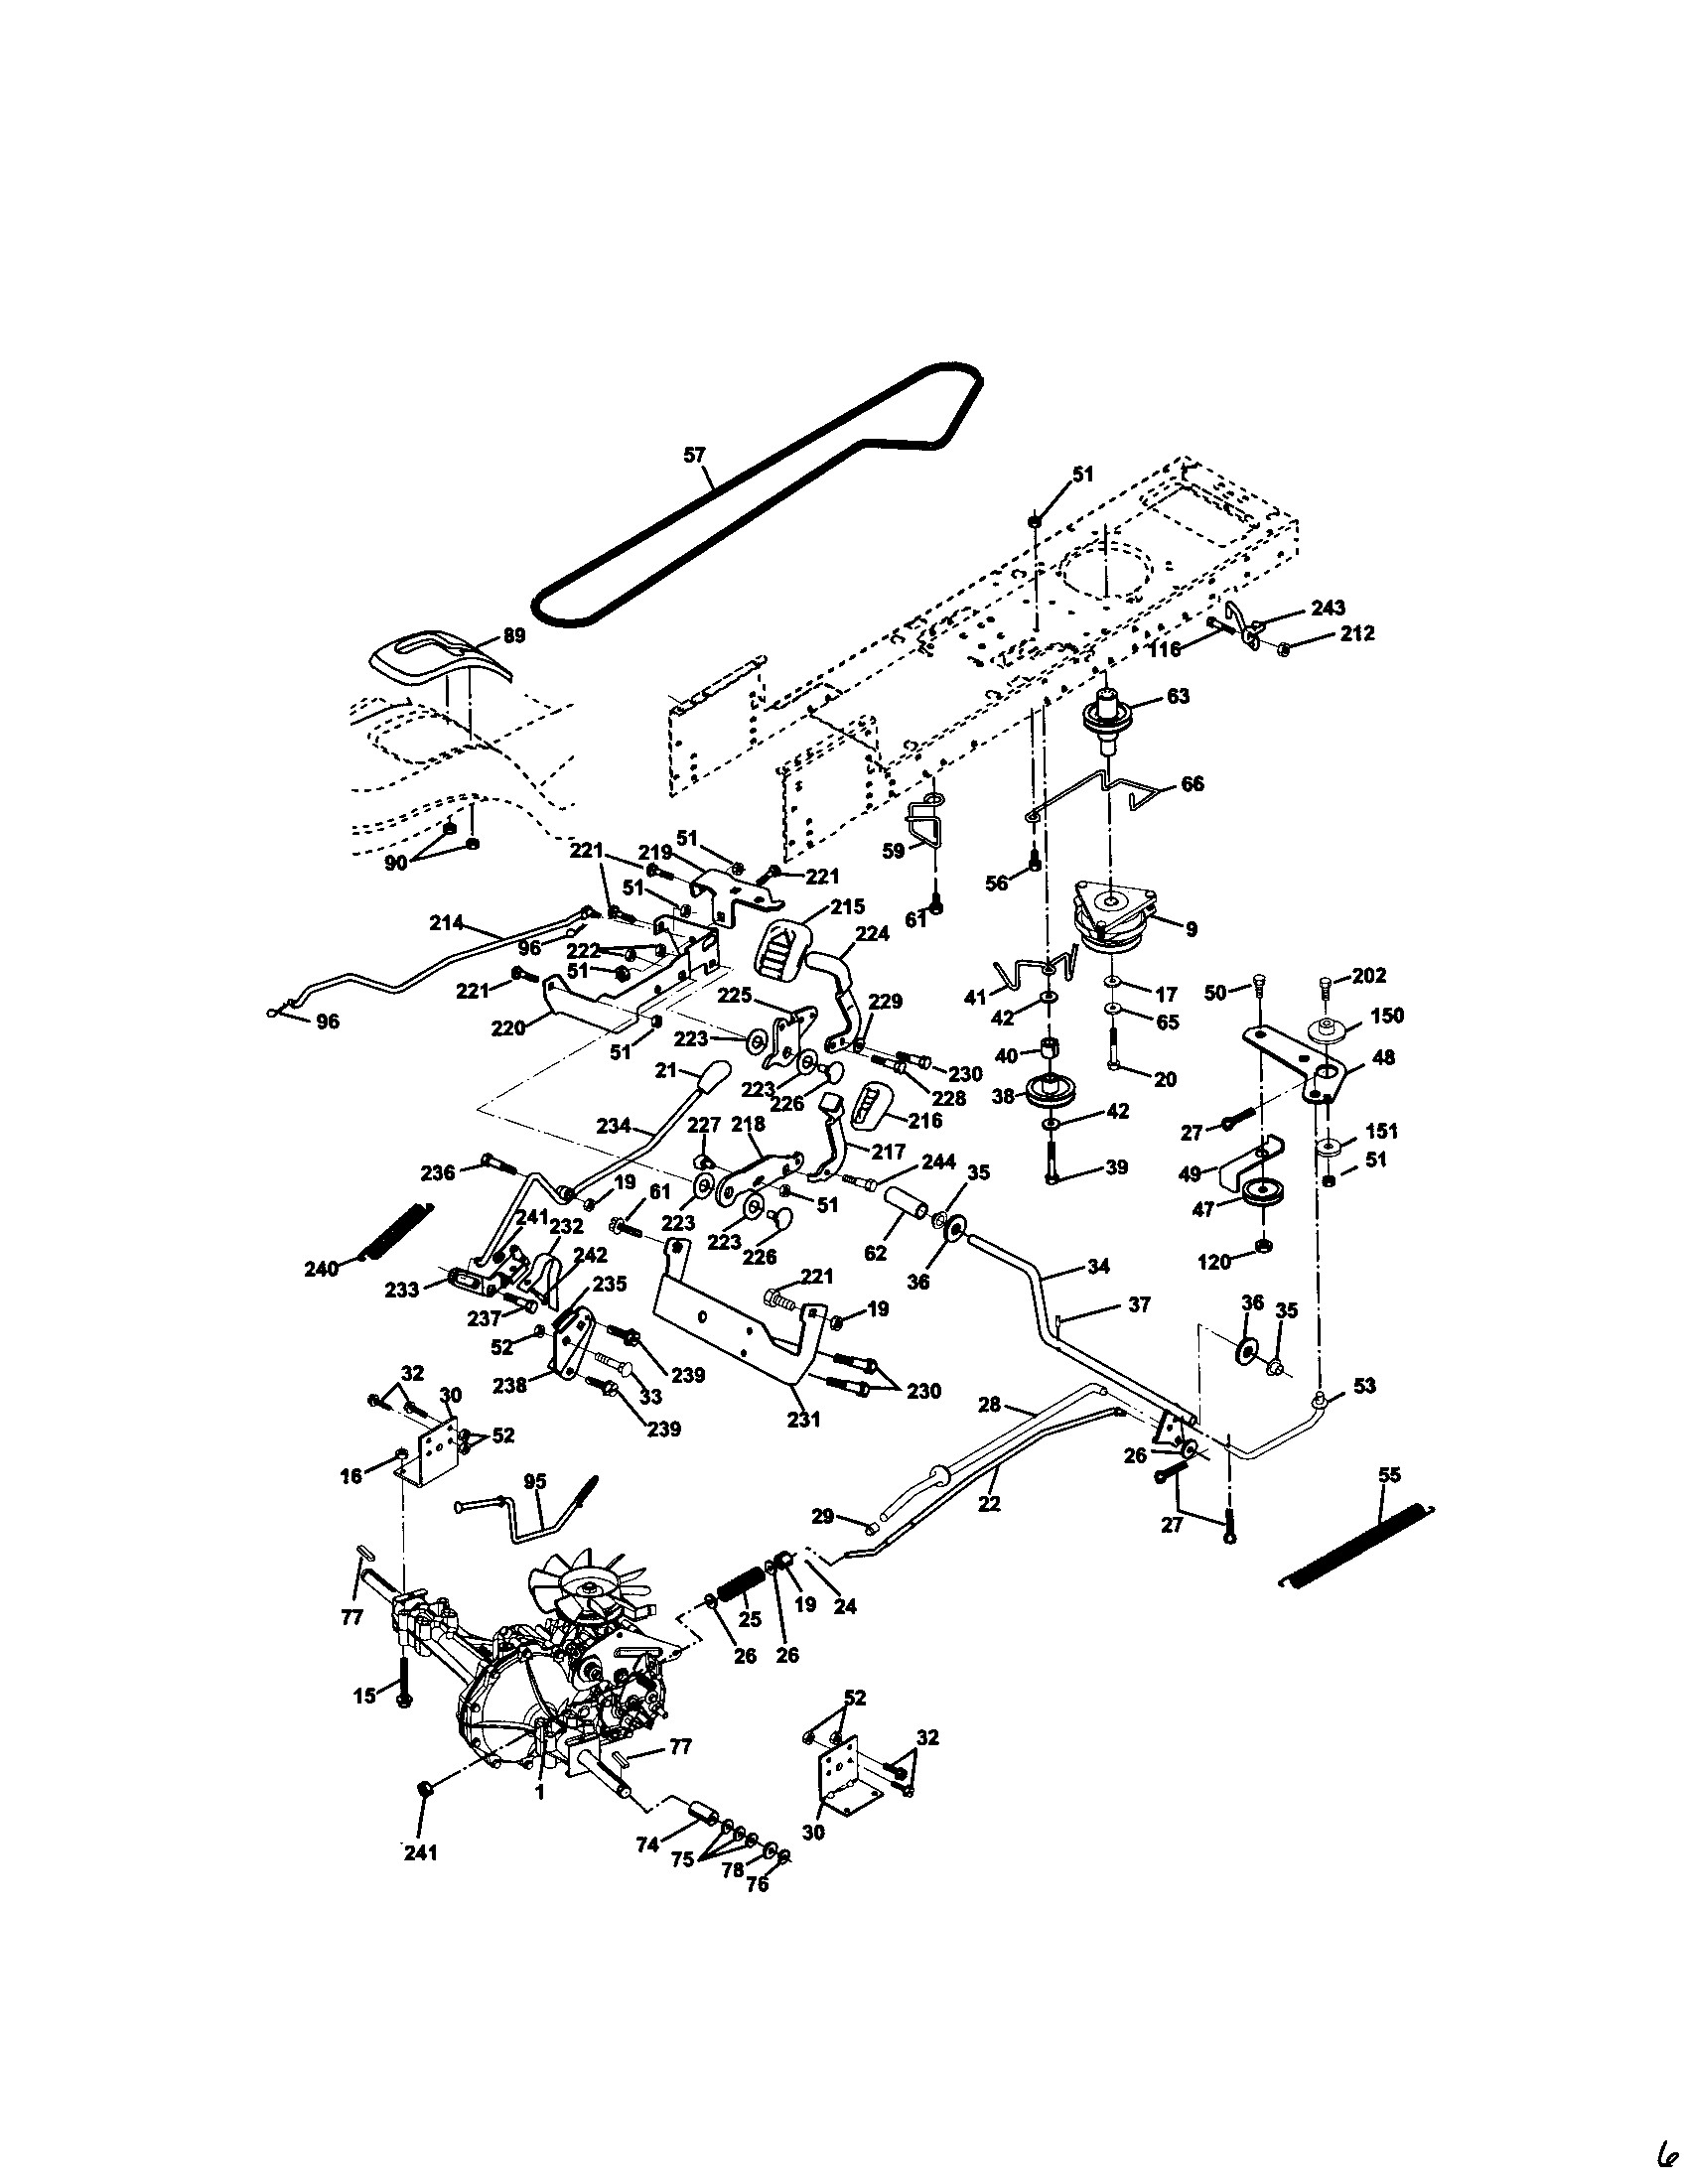 Craftsman Lawn Tractor Parts Diagram 917 Craftsman 20 Hp Electric Start 48 In Mower Automatic Of Craftsman Lawn Tractor Parts Diagram